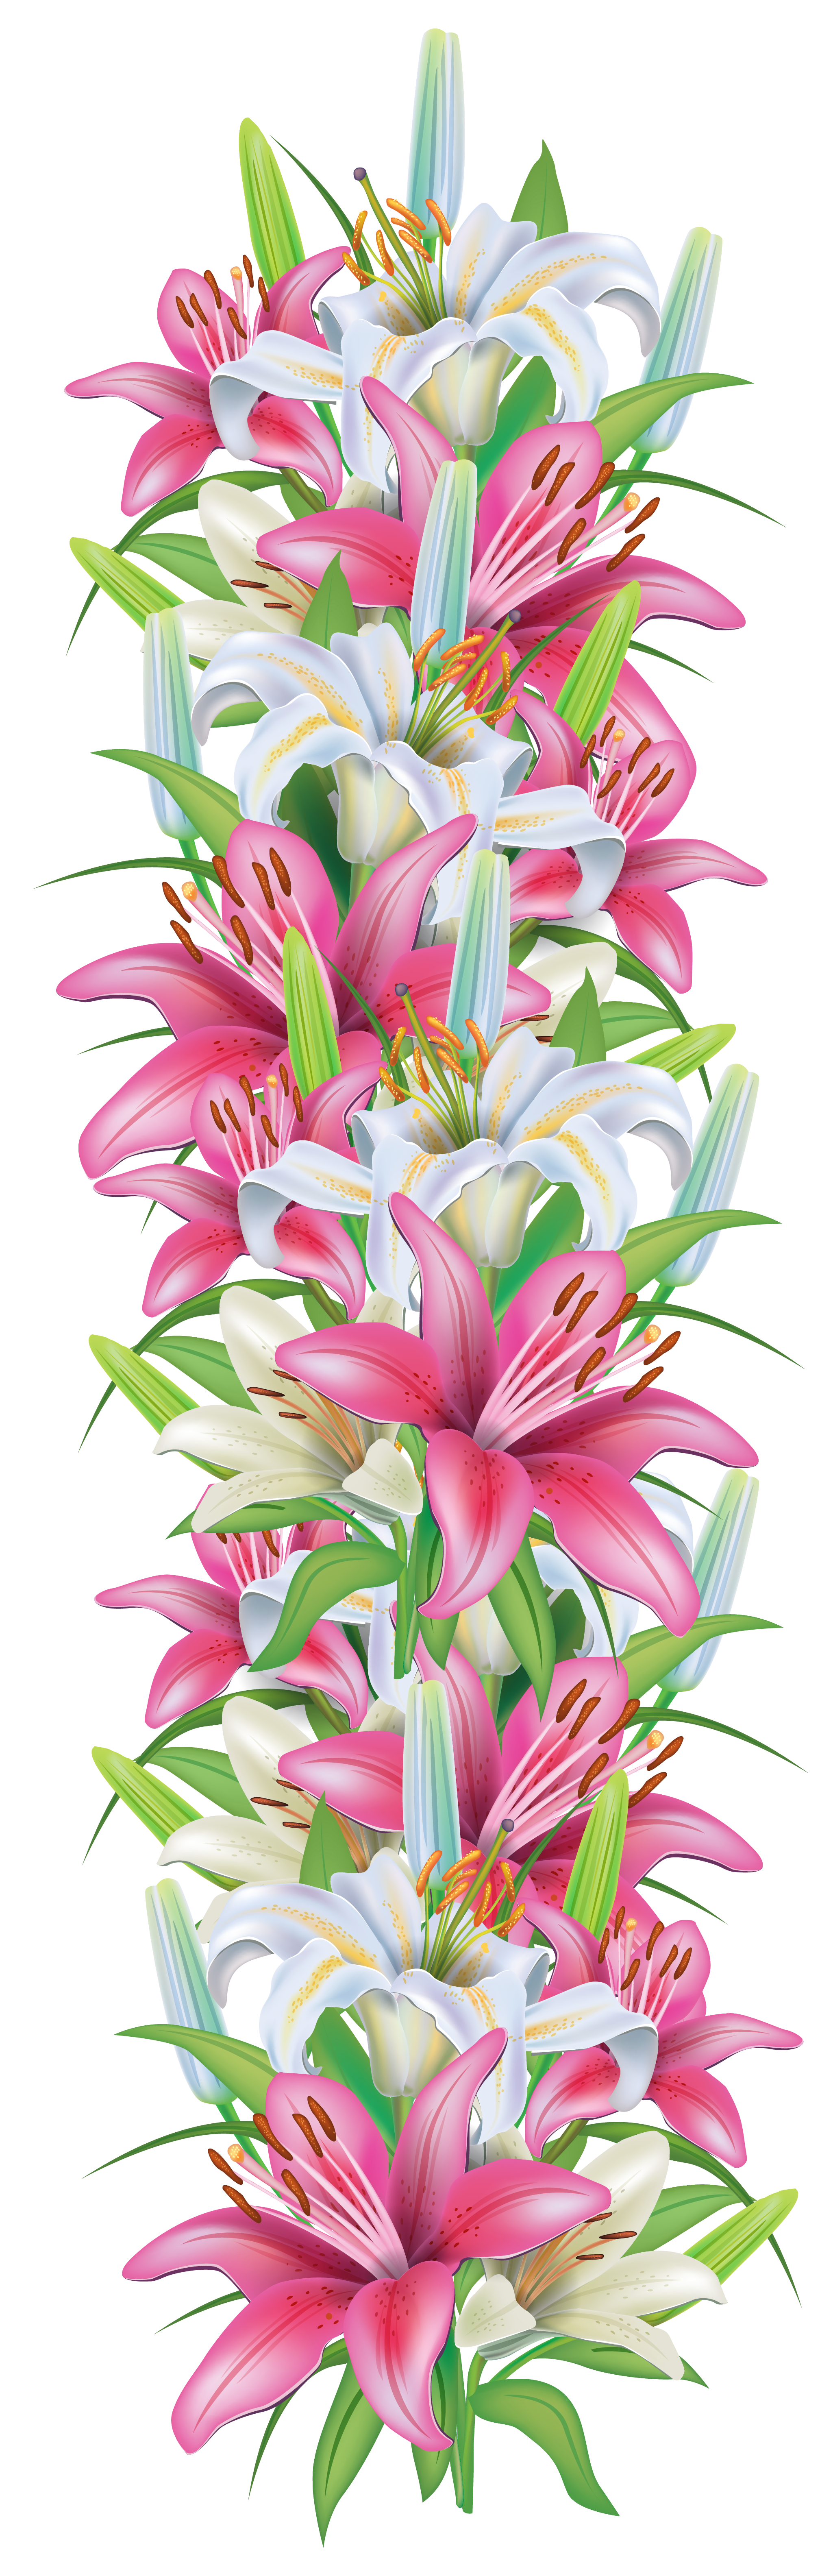 Flower bouquet border png. Pink and white lilies